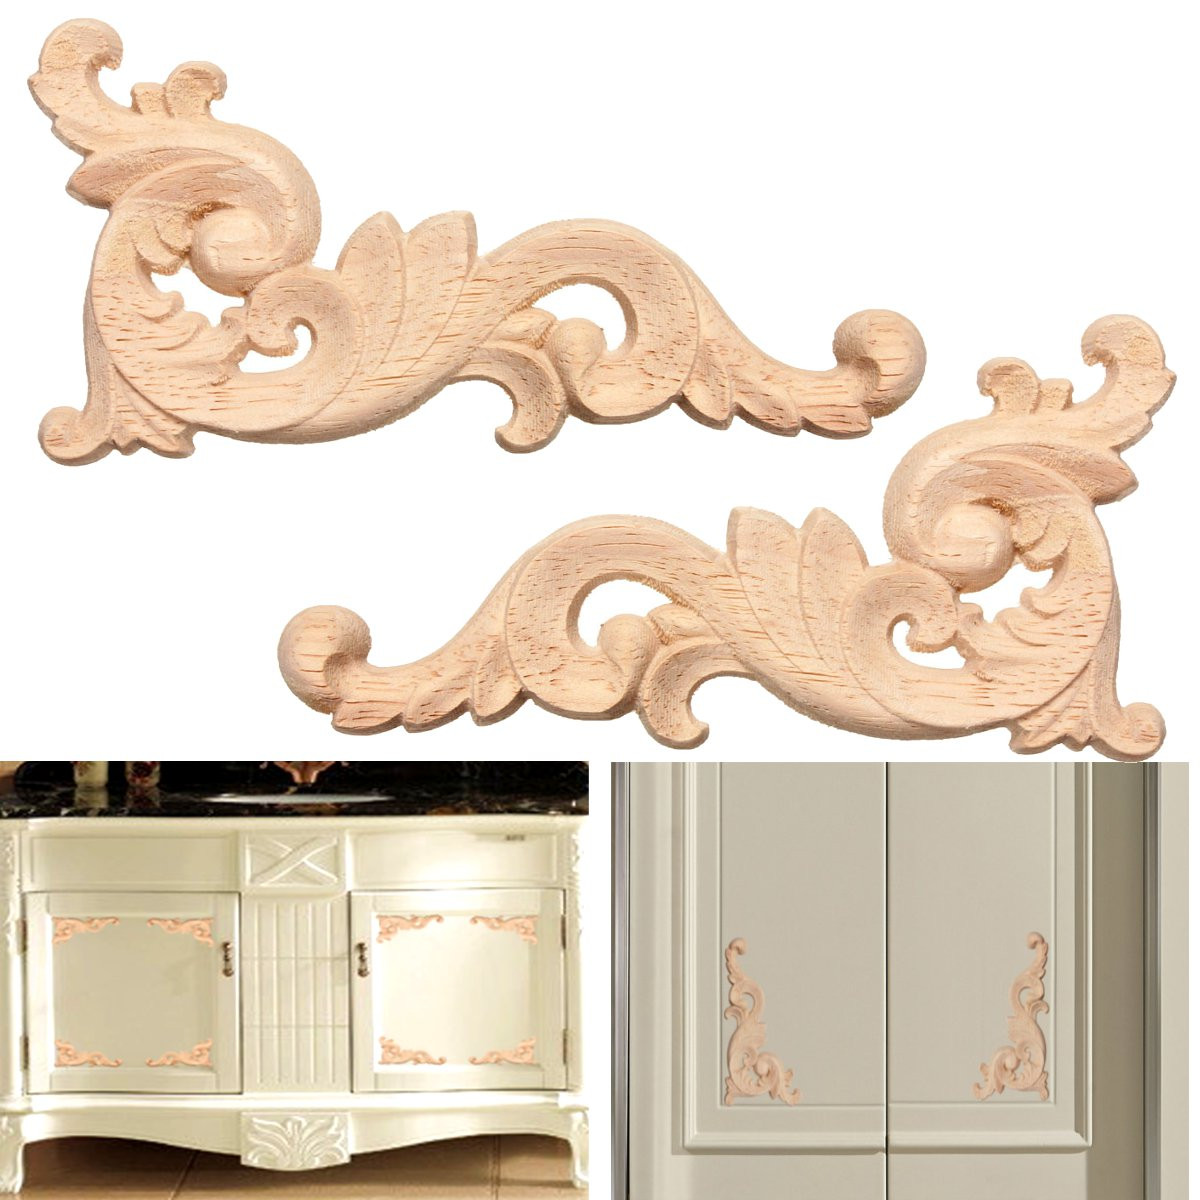 12x6cm Wood Carved Decal Corner Onlay Applique Frame Door Wall Decor Unpainted New